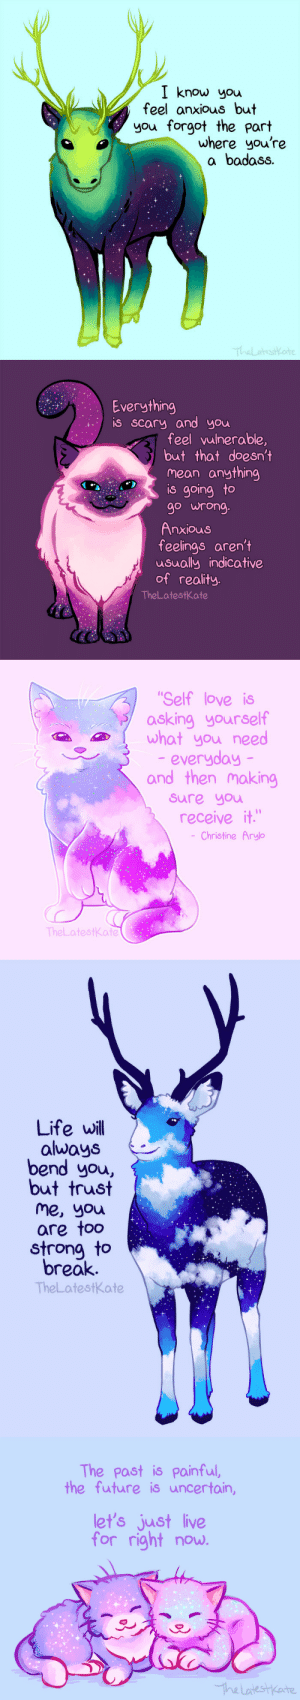 designwrld:    CUTE ANIMAL ILLUSTRATIONS MERGED WITH POWERFUL MOTIVATIONAL QUOTES   : I know you  feel anxious but  you forgot the part  where you're  a badass.   Everything  is Scary and you  feelvulnerable,  but that doesn't  mean anything  is going to  go wrong  feelings aren't  usually indicative  of reality.  TheLatestKate   Self love is  asking yourself  what you need  everyday  and then making  sure you  receive it  Christine Arylo  TheLatestkate   Life will  always  bend you,  but trust  me, you  are too  strong to  break.  TheLatestk.ate   The past is painful,  the future is uncertain,  let's just live  for right now designwrld:    CUTE ANIMAL ILLUSTRATIONS MERGED WITH POWERFUL MOTIVATIONAL QUOTES